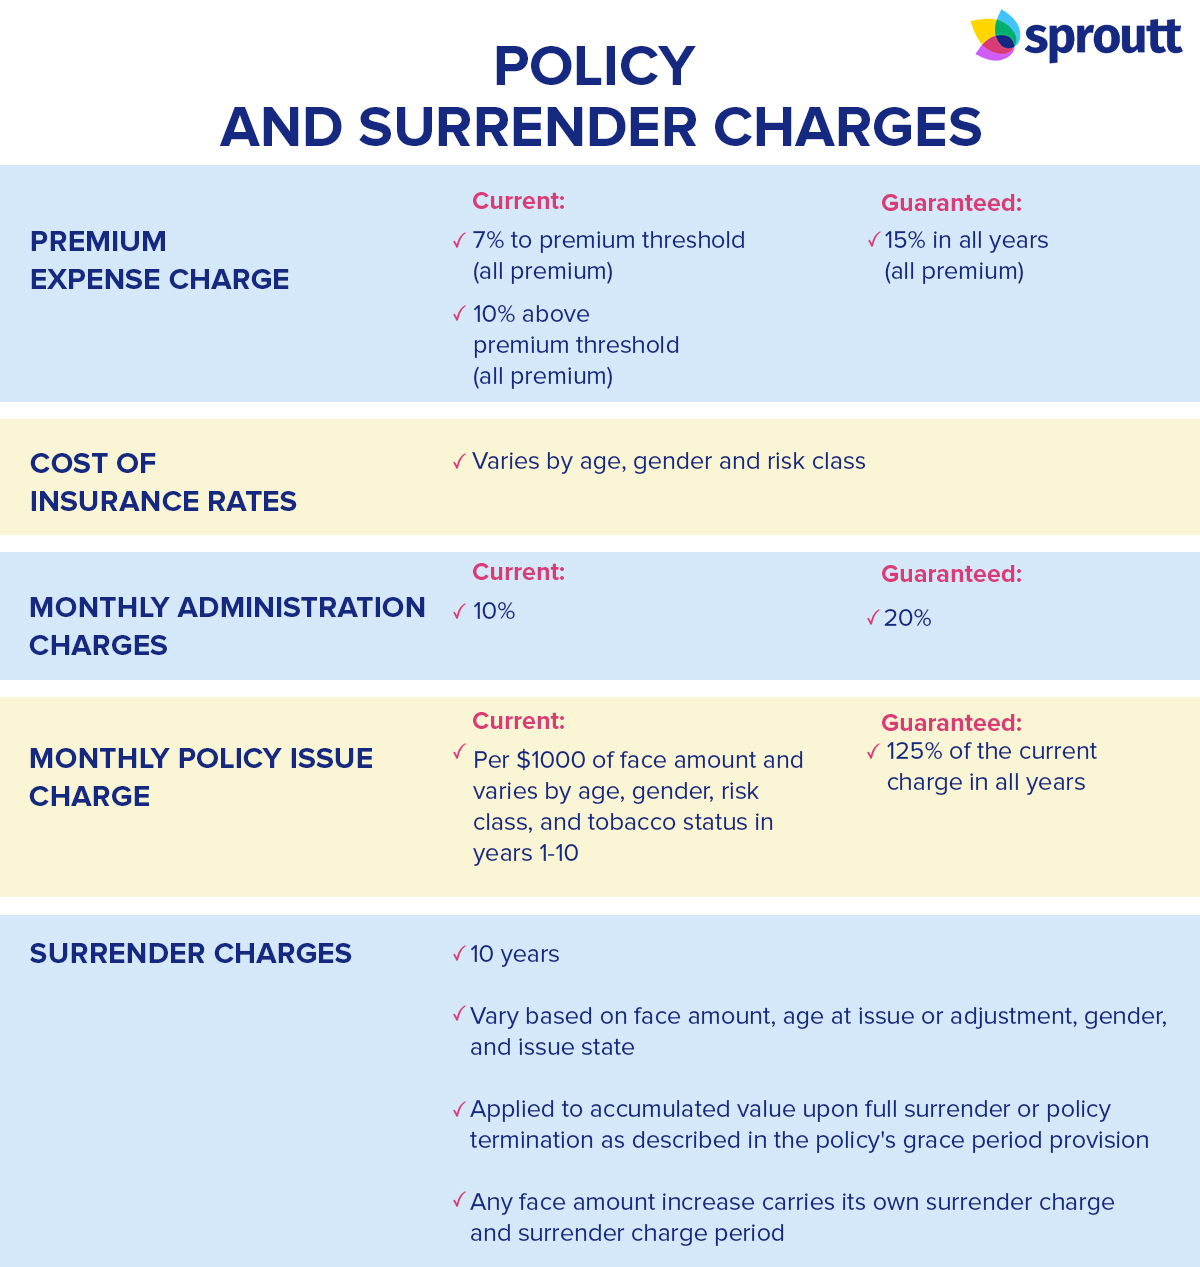 Policy and surrender charges